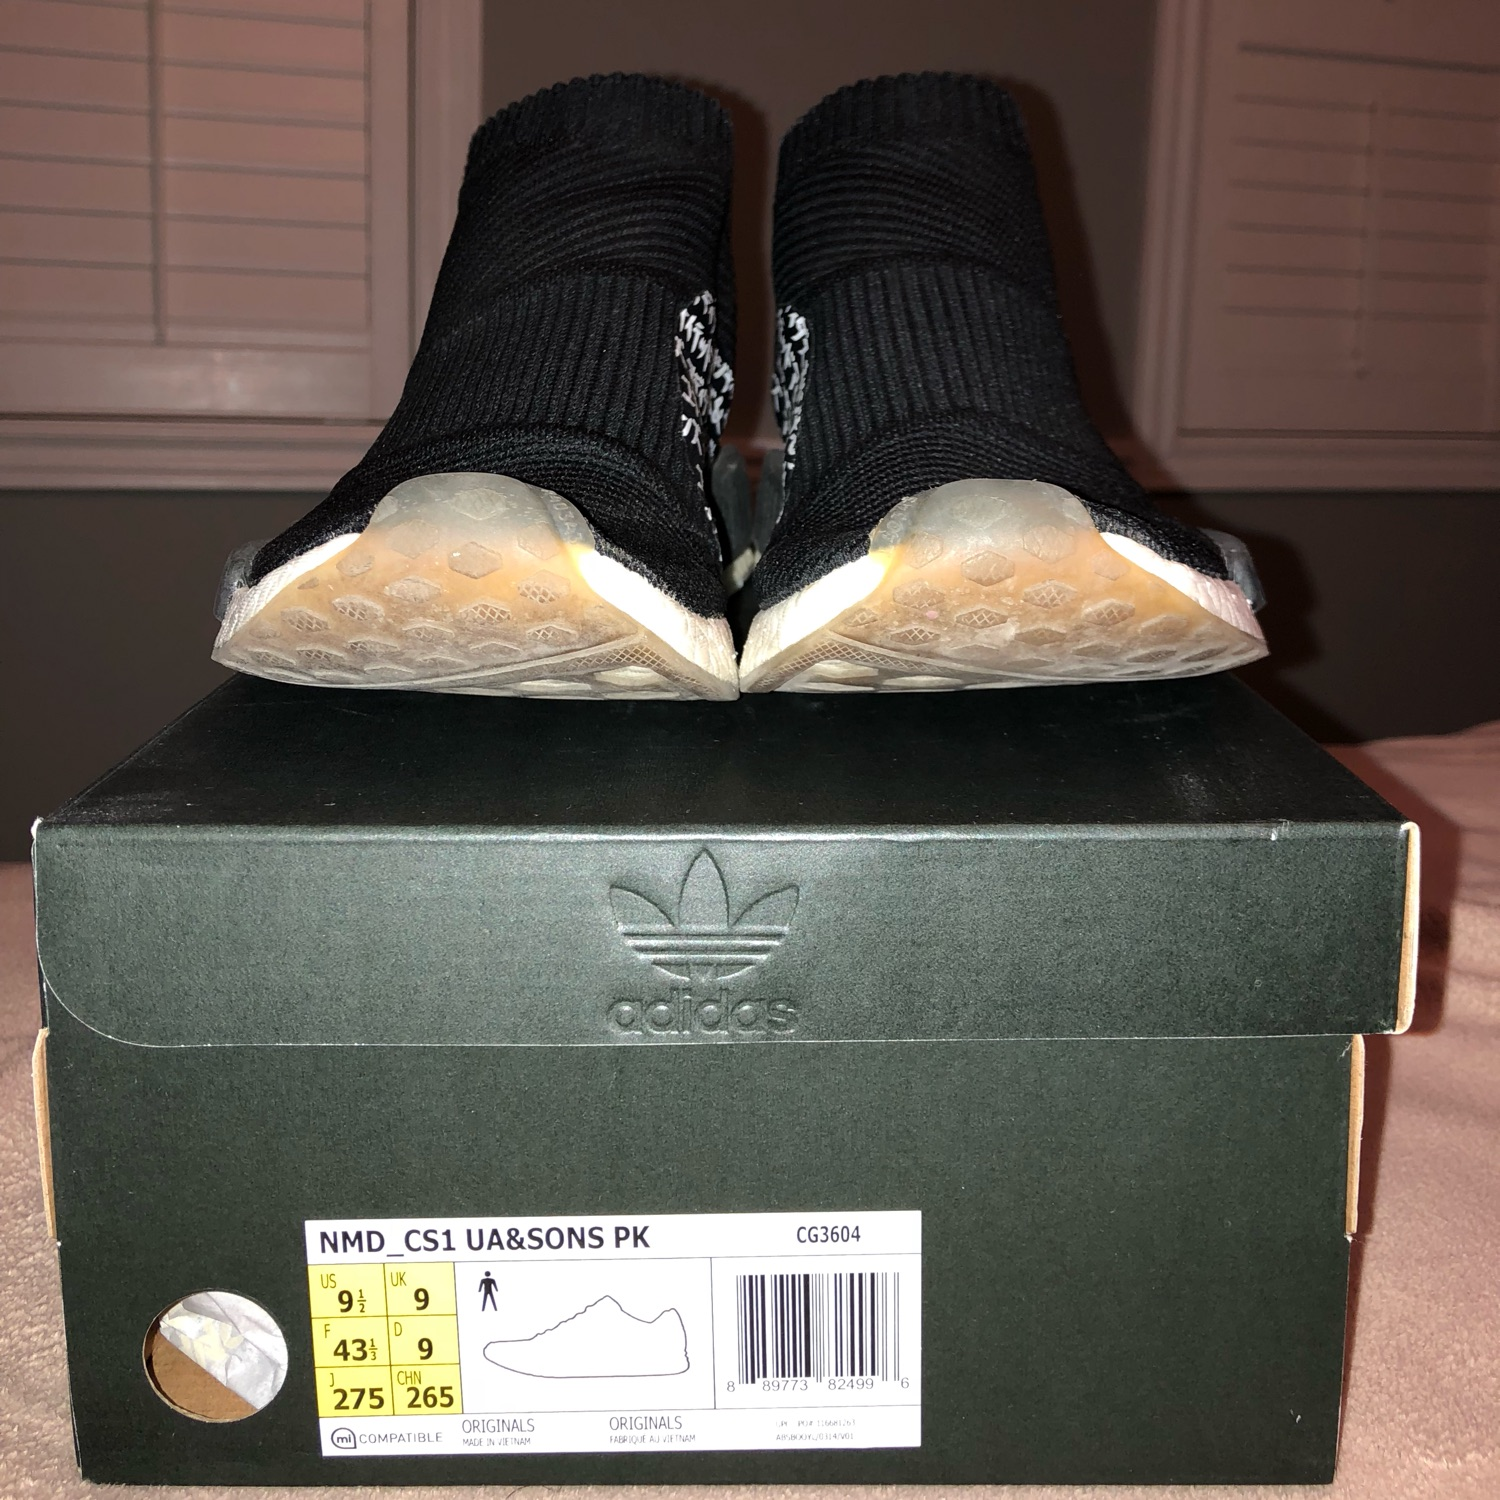 3536d91c3870f Adidas Mikitype Nmd Cs1 United Arrows   Sons